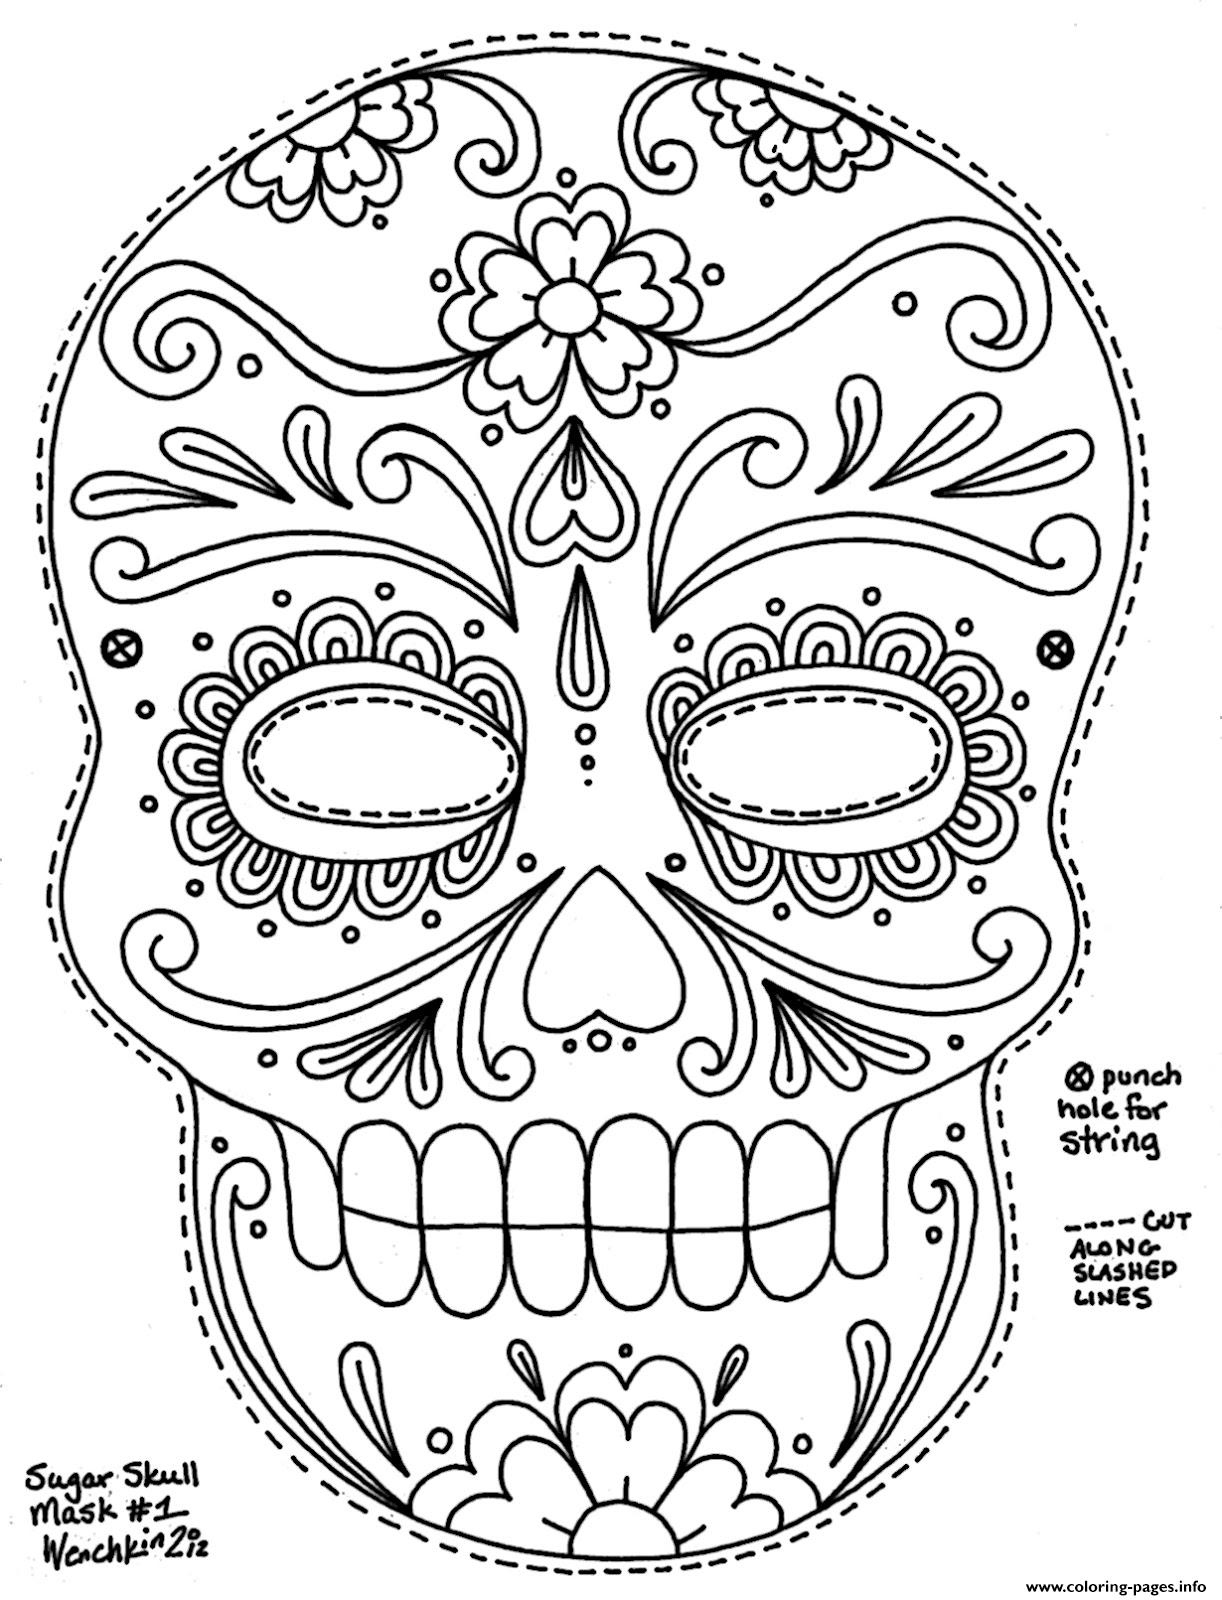 Simple Adult Coloring Pages At Getcolorings